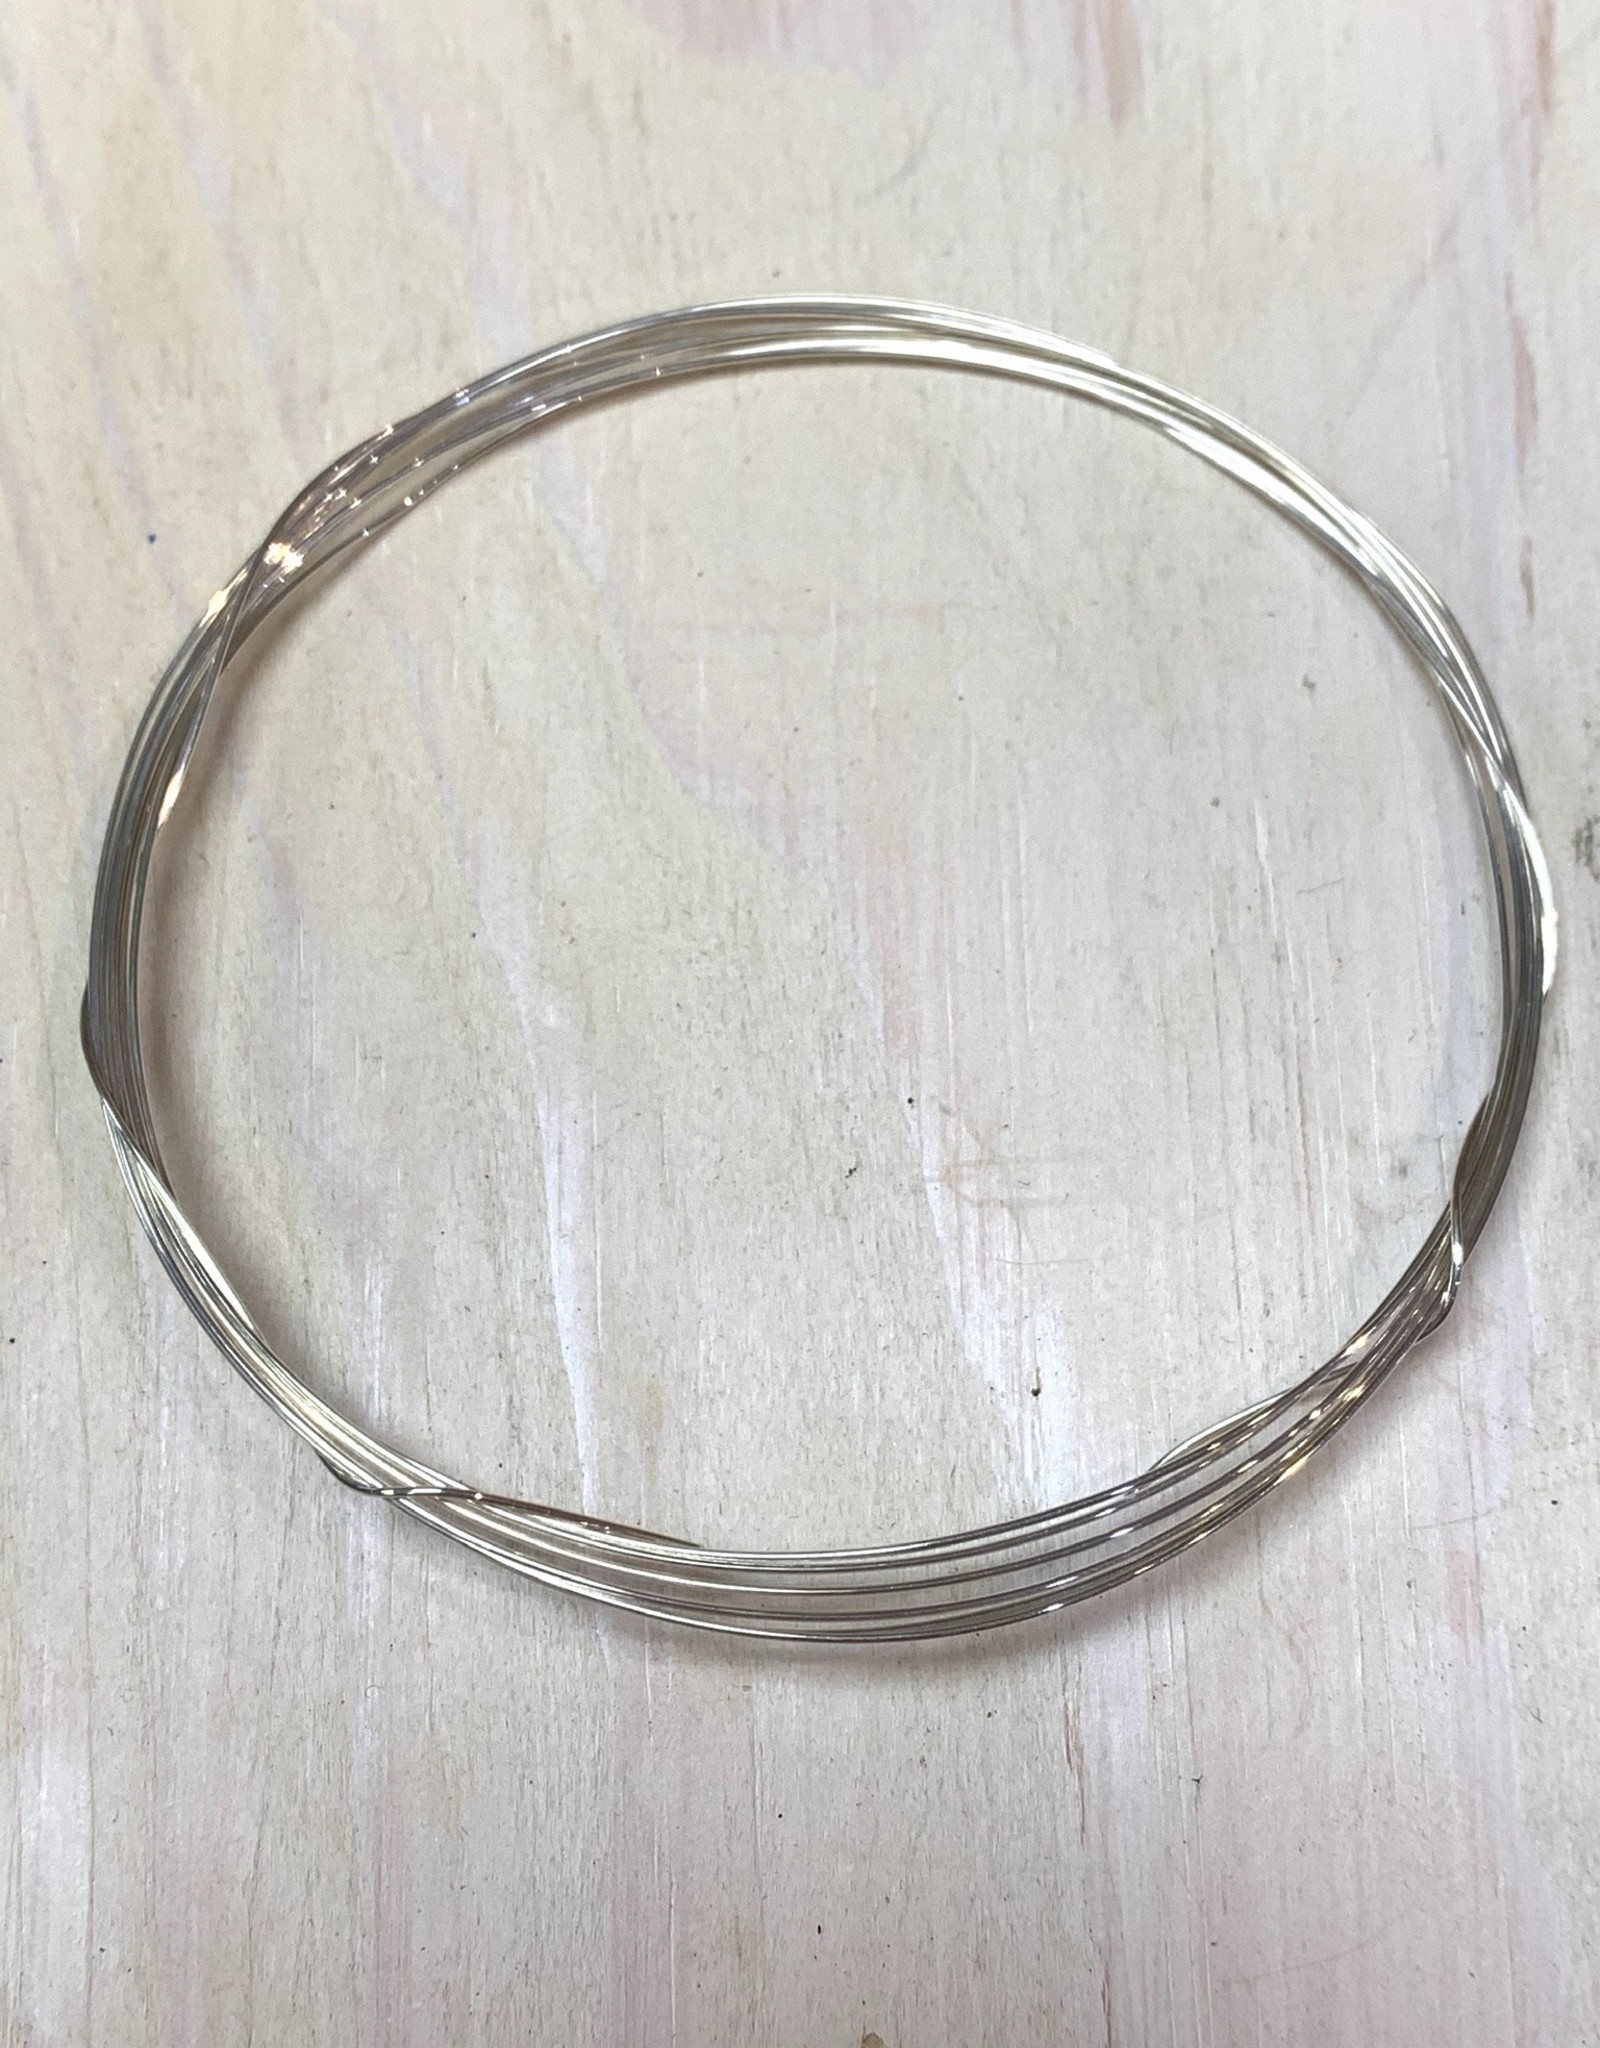 24ga Round Wire Sterling Silver 5ft